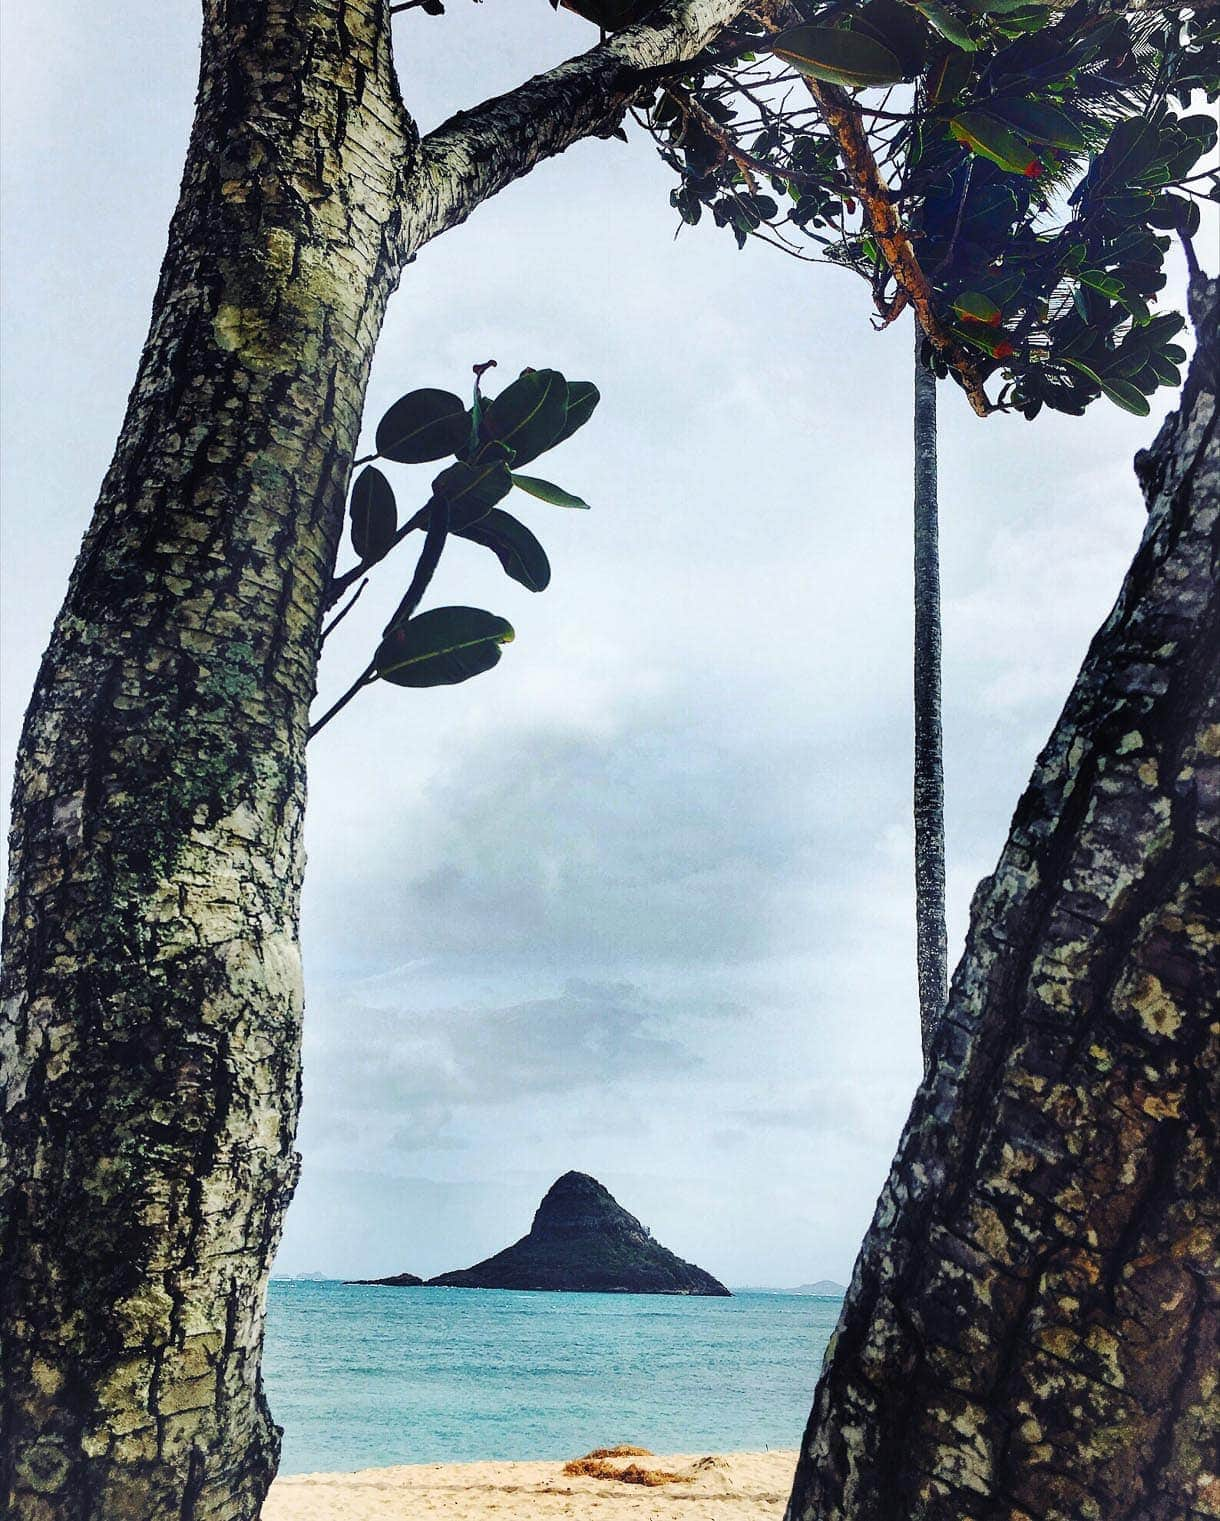 Chinaman's hat, Mokolii island, North Shore Oahu